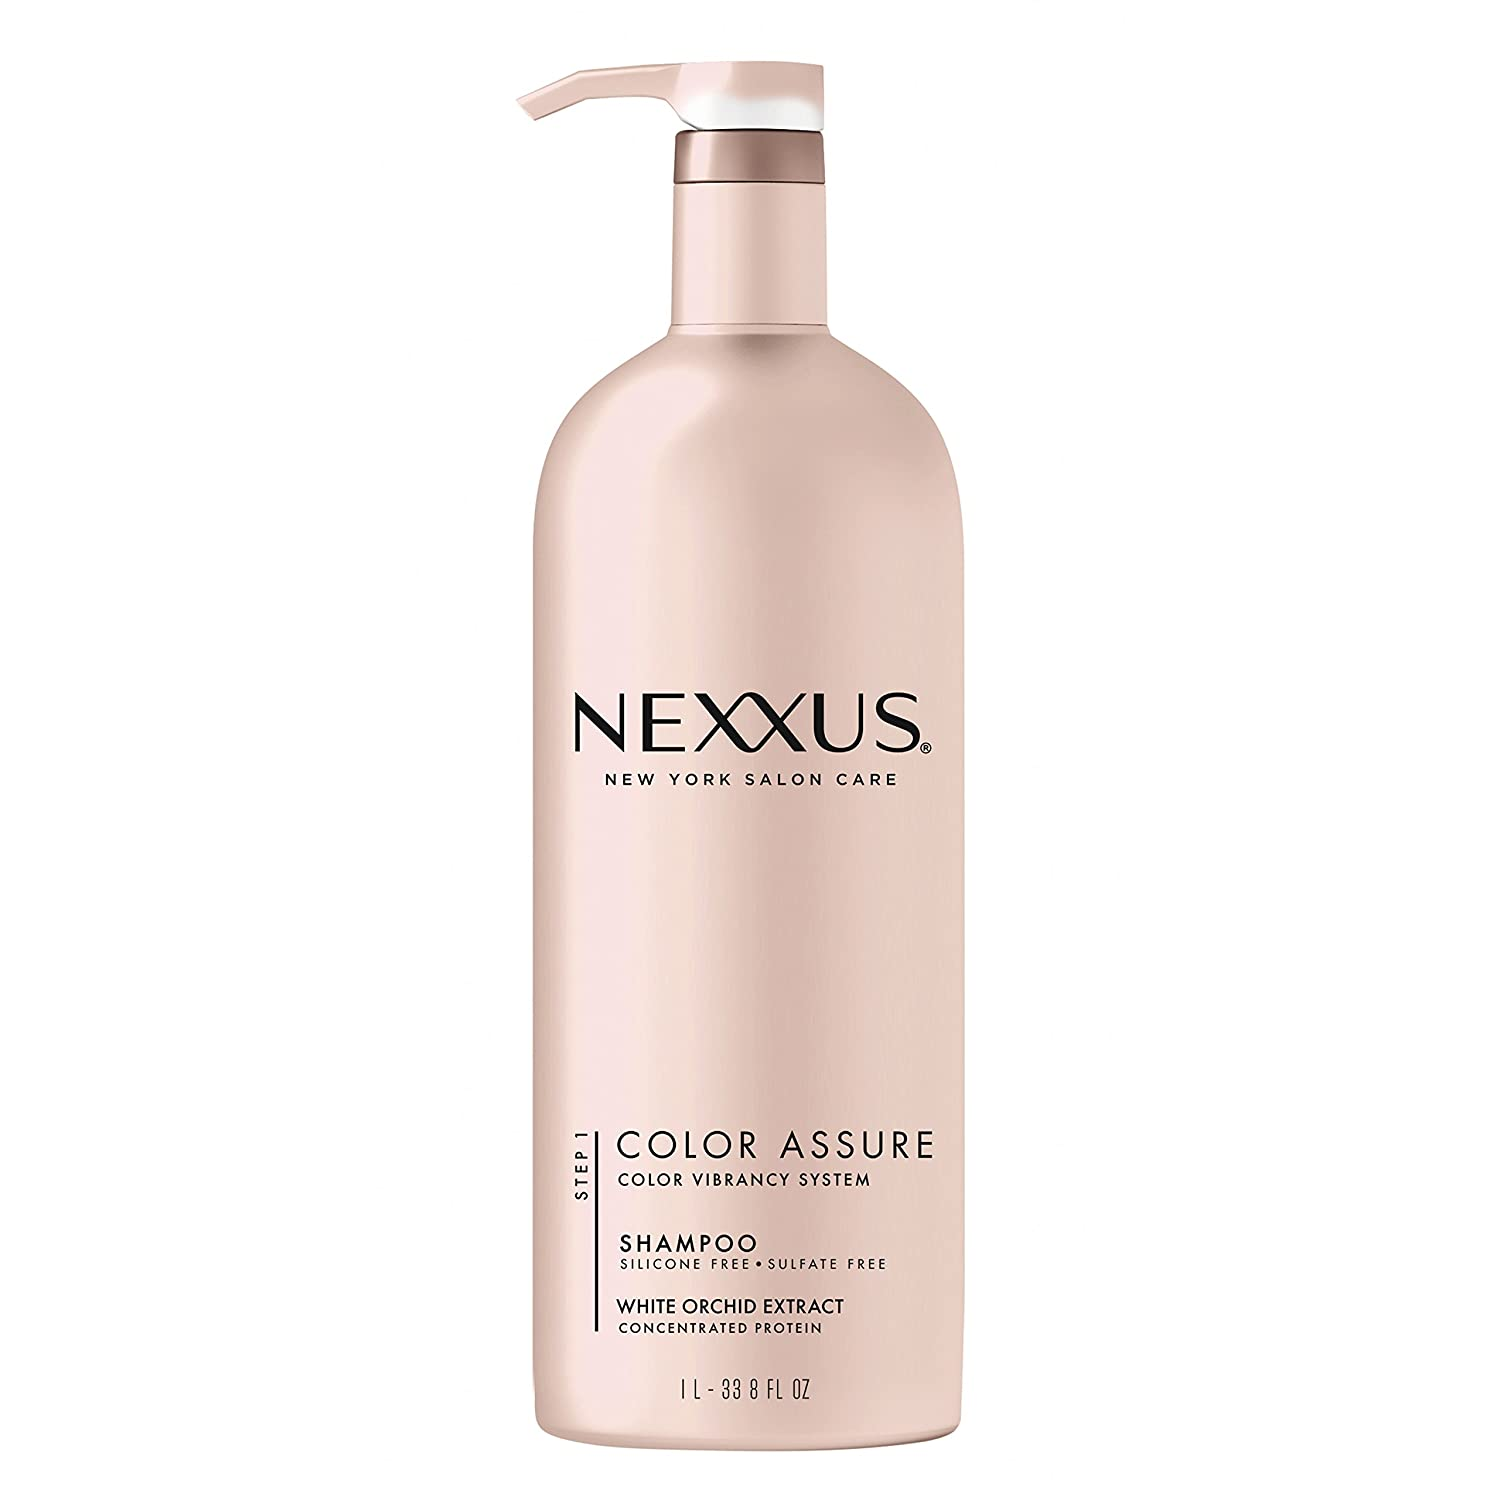 3. NEXXUS Color Assure Shampoo for Color-Treated Hair - Best Shampoo for Color Protection